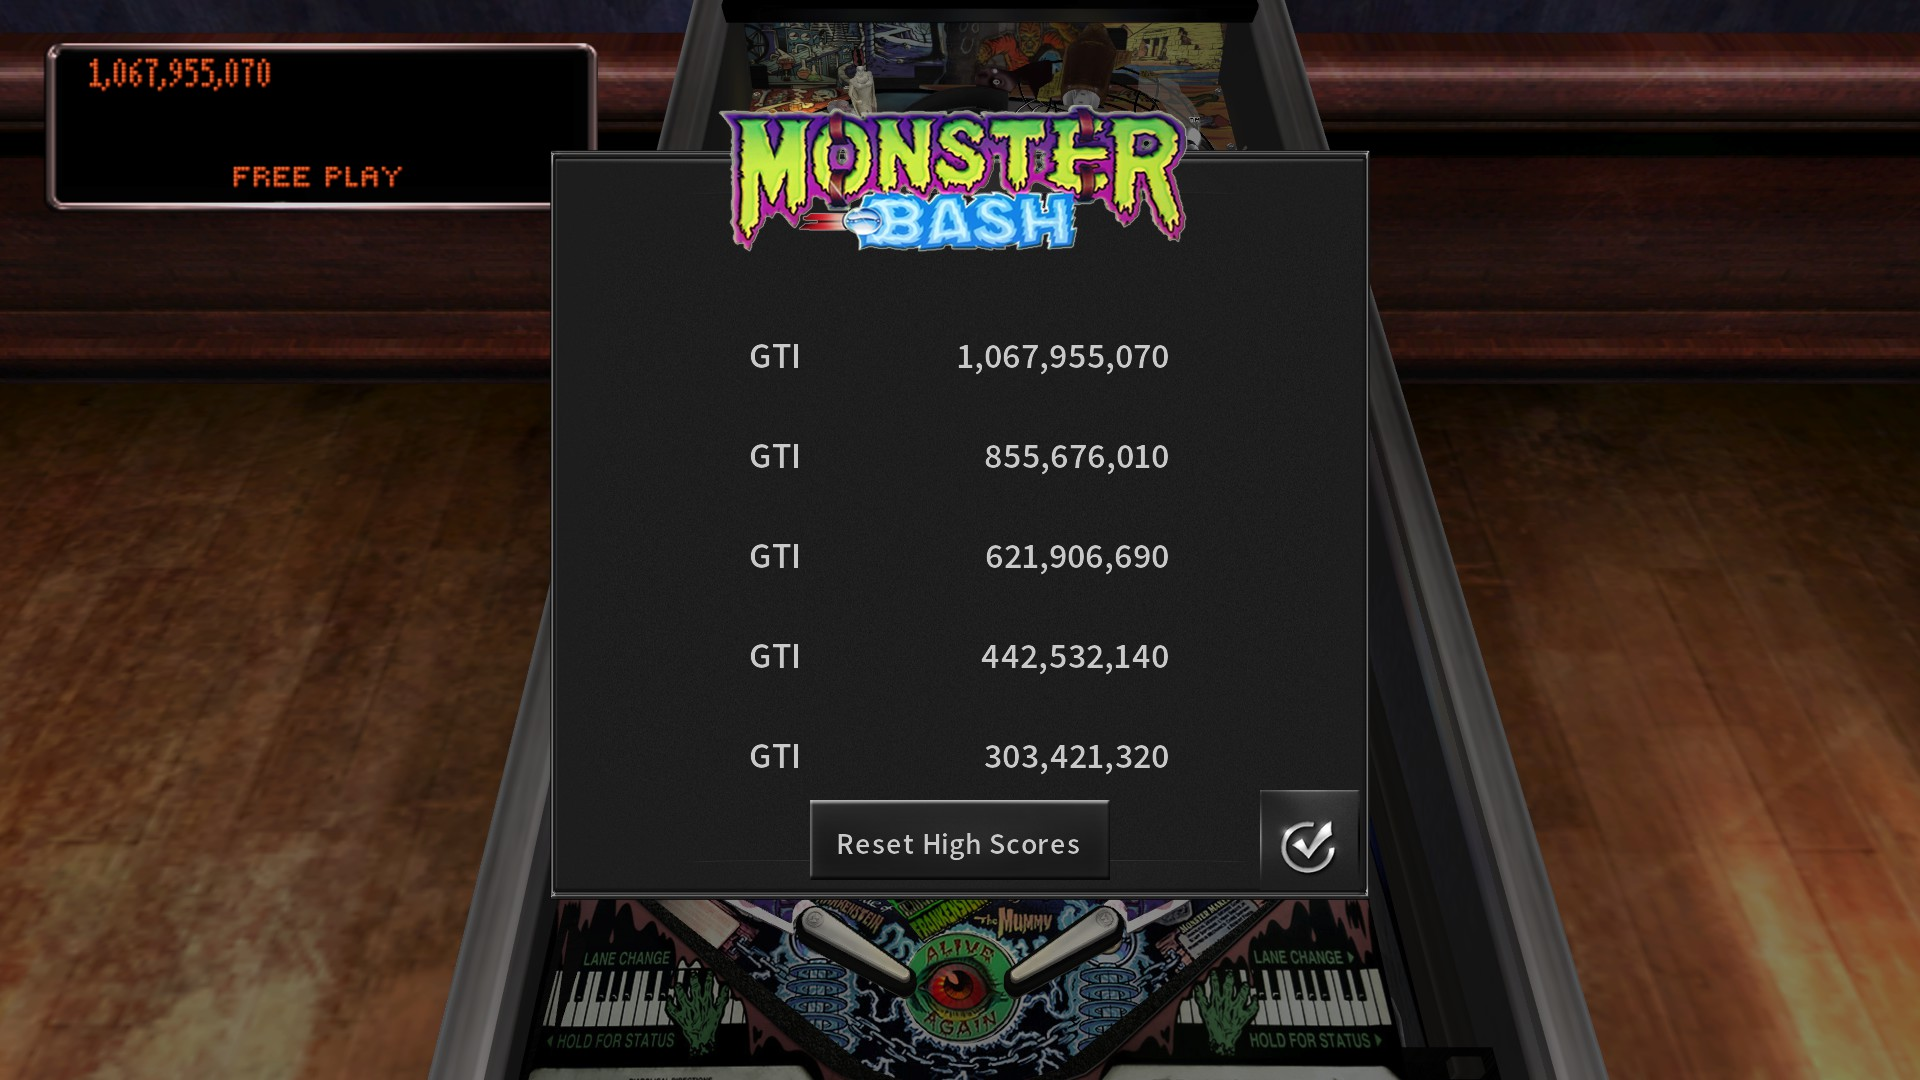 GTibel: Pinball Arcade: Monster Bash (PC) 1,067,955,070 points on 2020-07-25 07:34:14